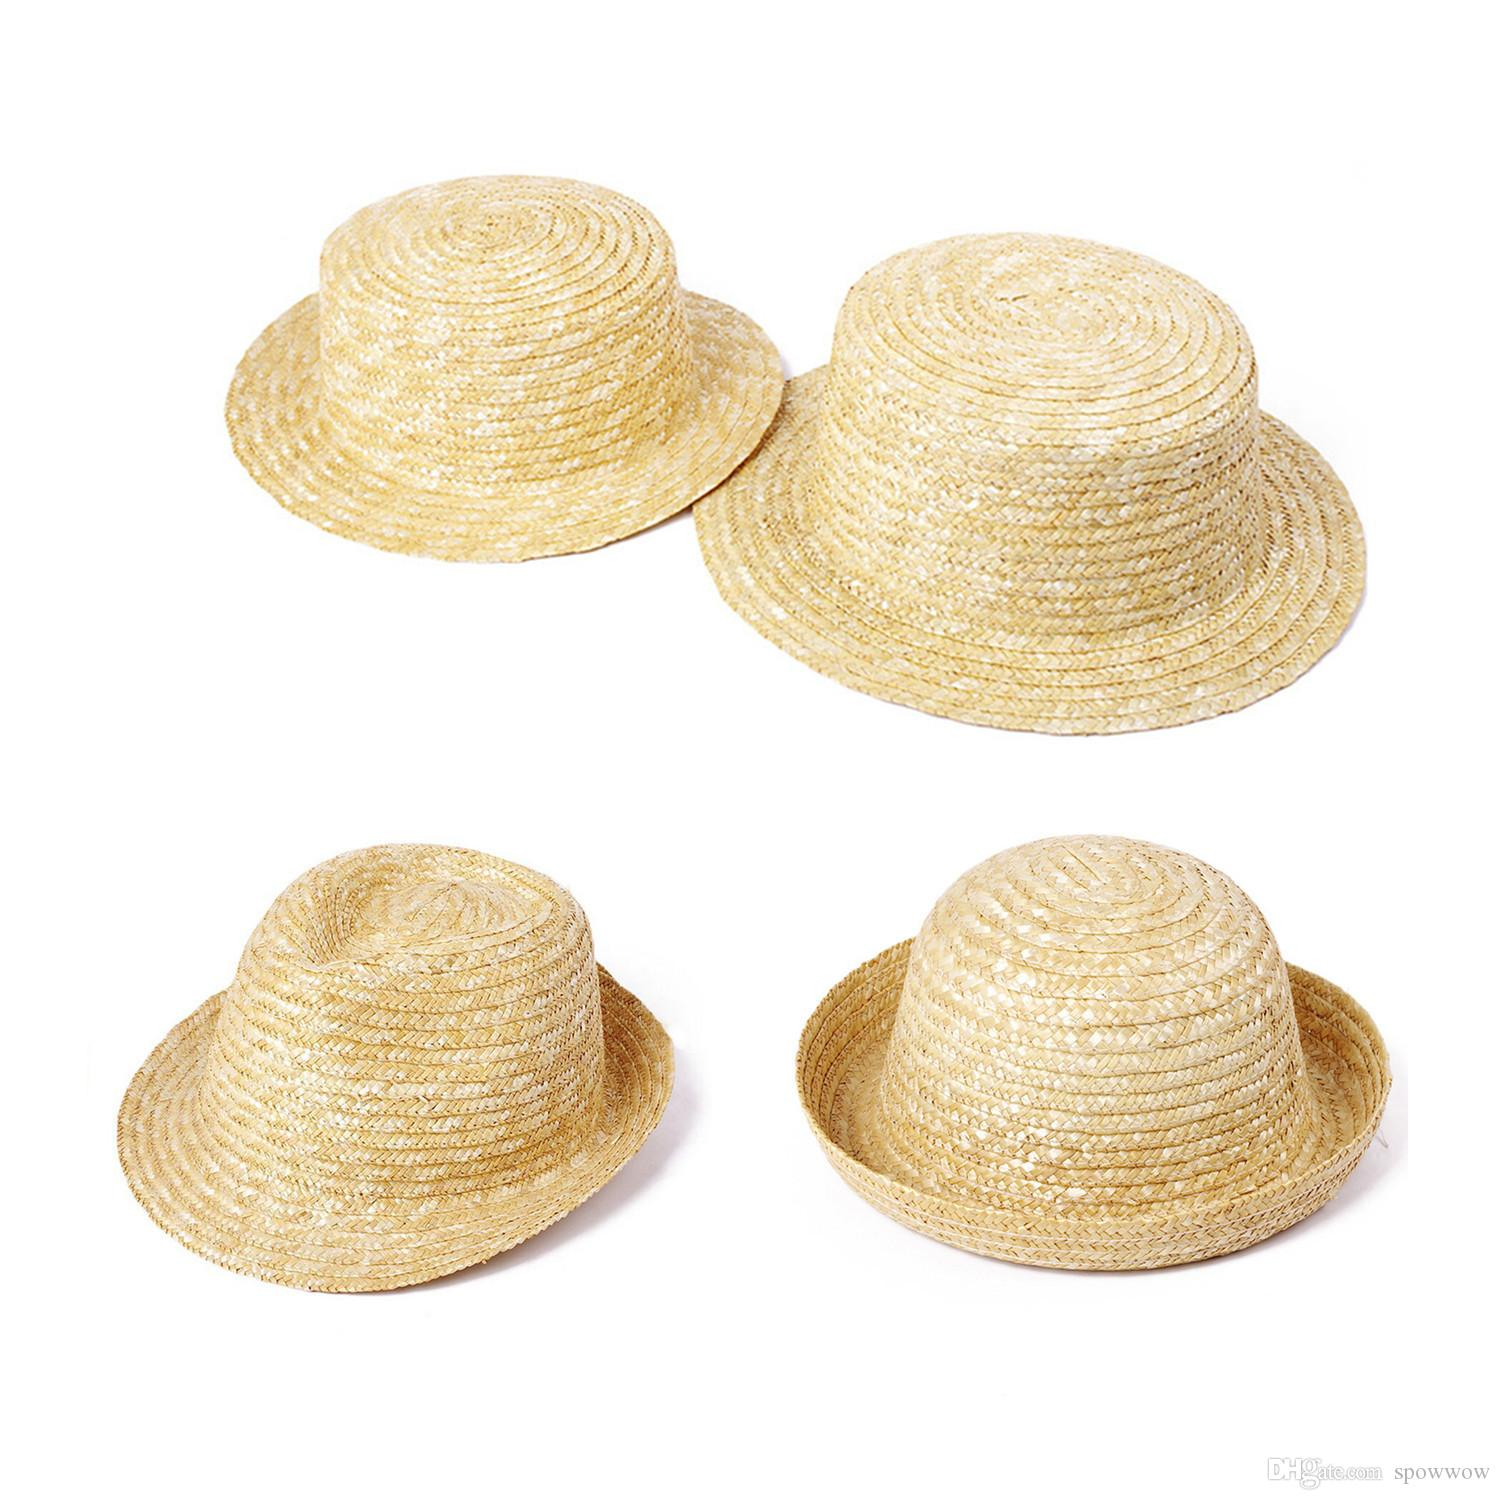 Womens Classic Child Adult Natural Handmade Straw Hat Panama Flat Top Wave  Roll Brim Cap T249 Summer Hats For Women Bucket Hats For Women From  Spowwow 6c12a3ec67dd